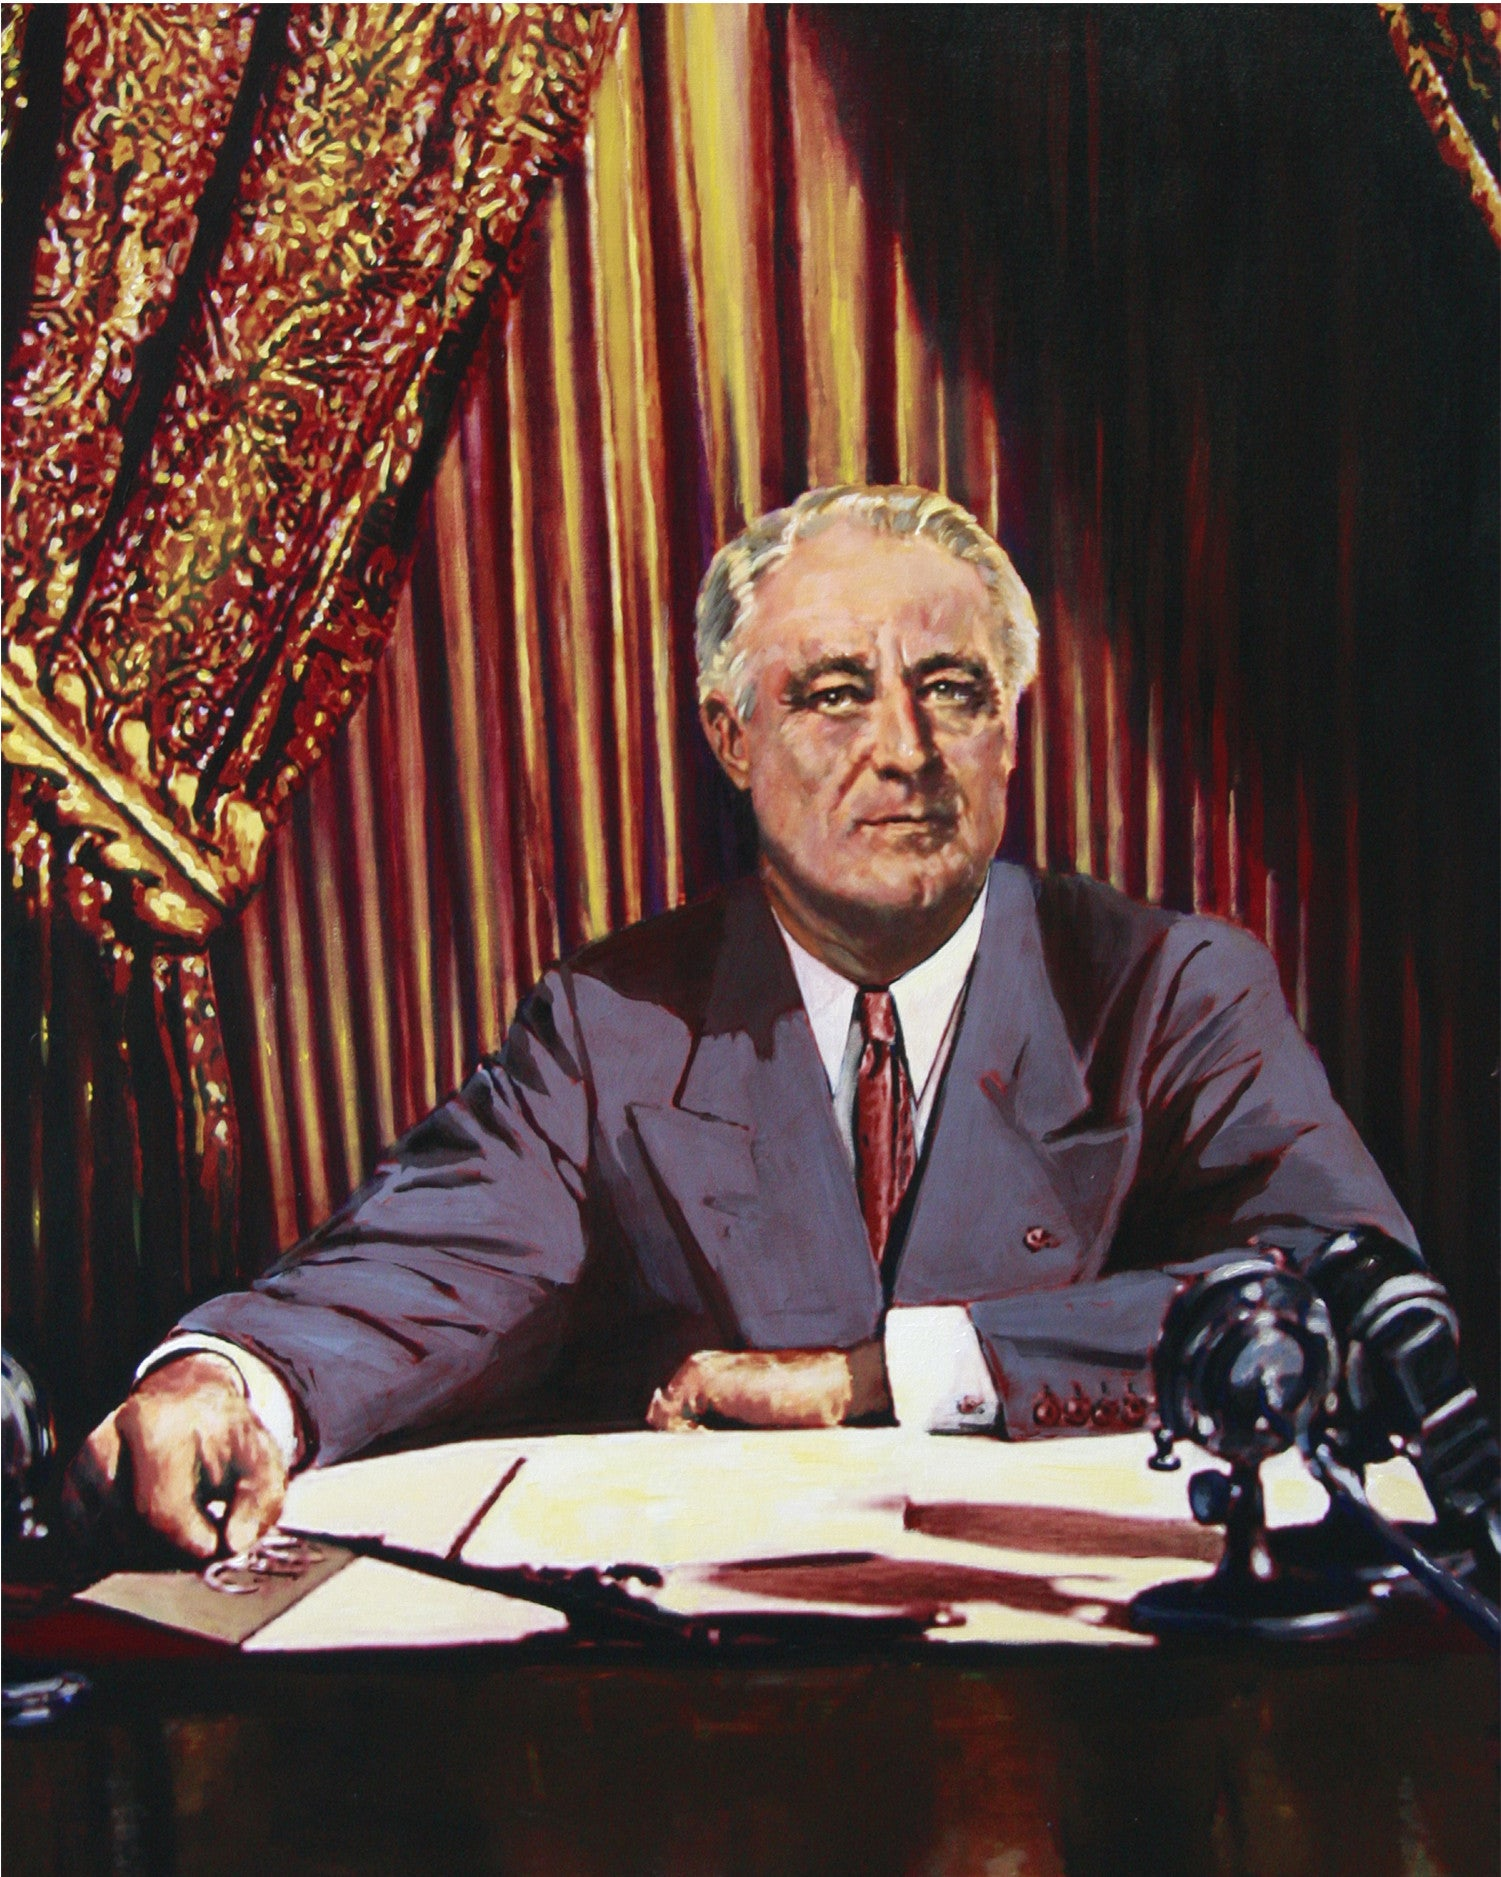 Franklin D. Roosevelt delivers his Fireside Chat radio braodcast. by artist Trevor Goring